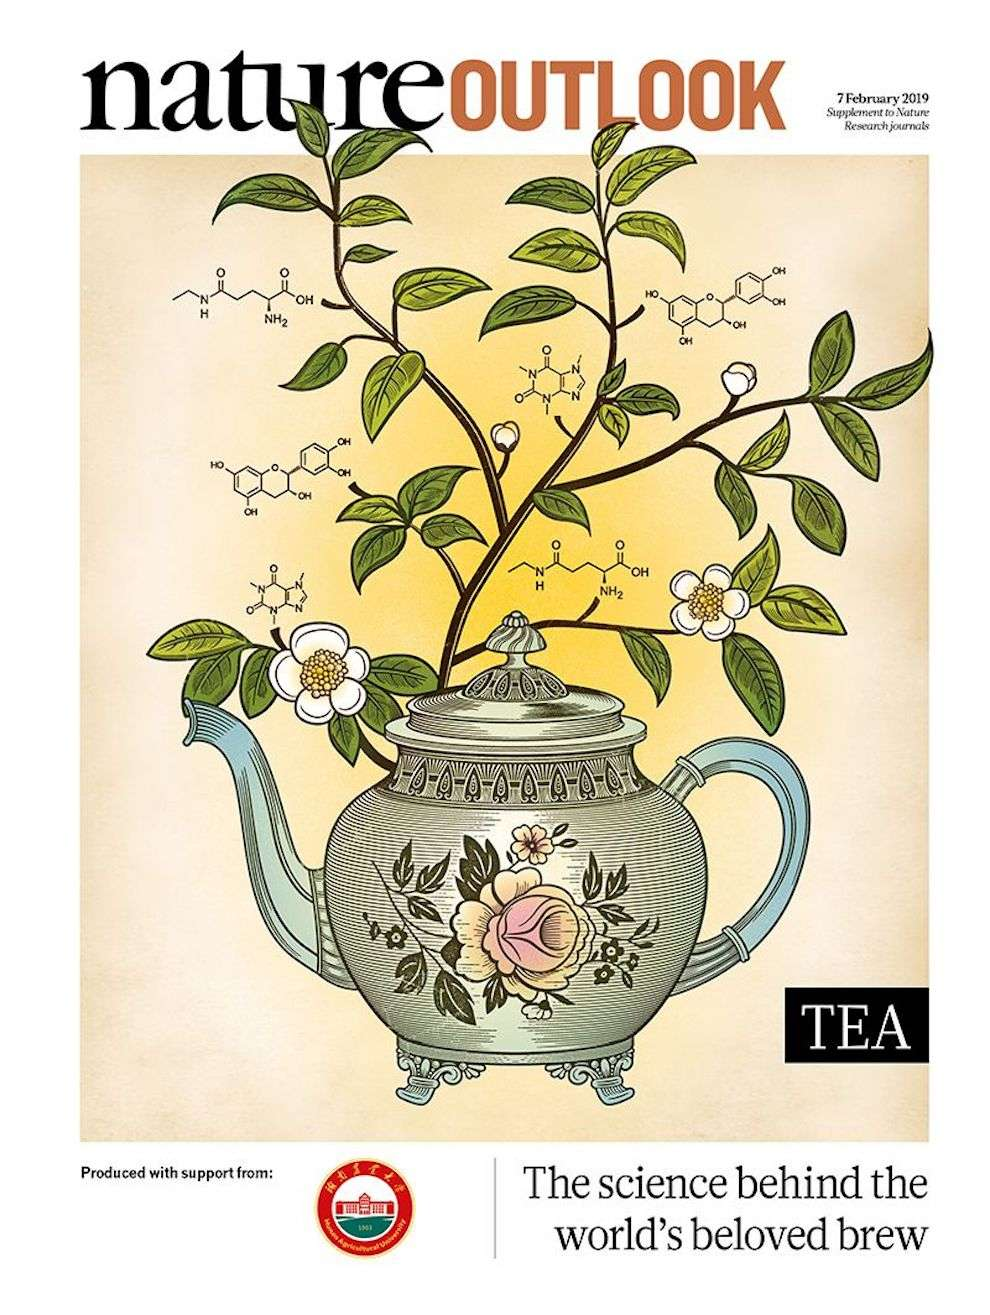 Susan Burghart, Magazine cover - digital illustration of a tea pot